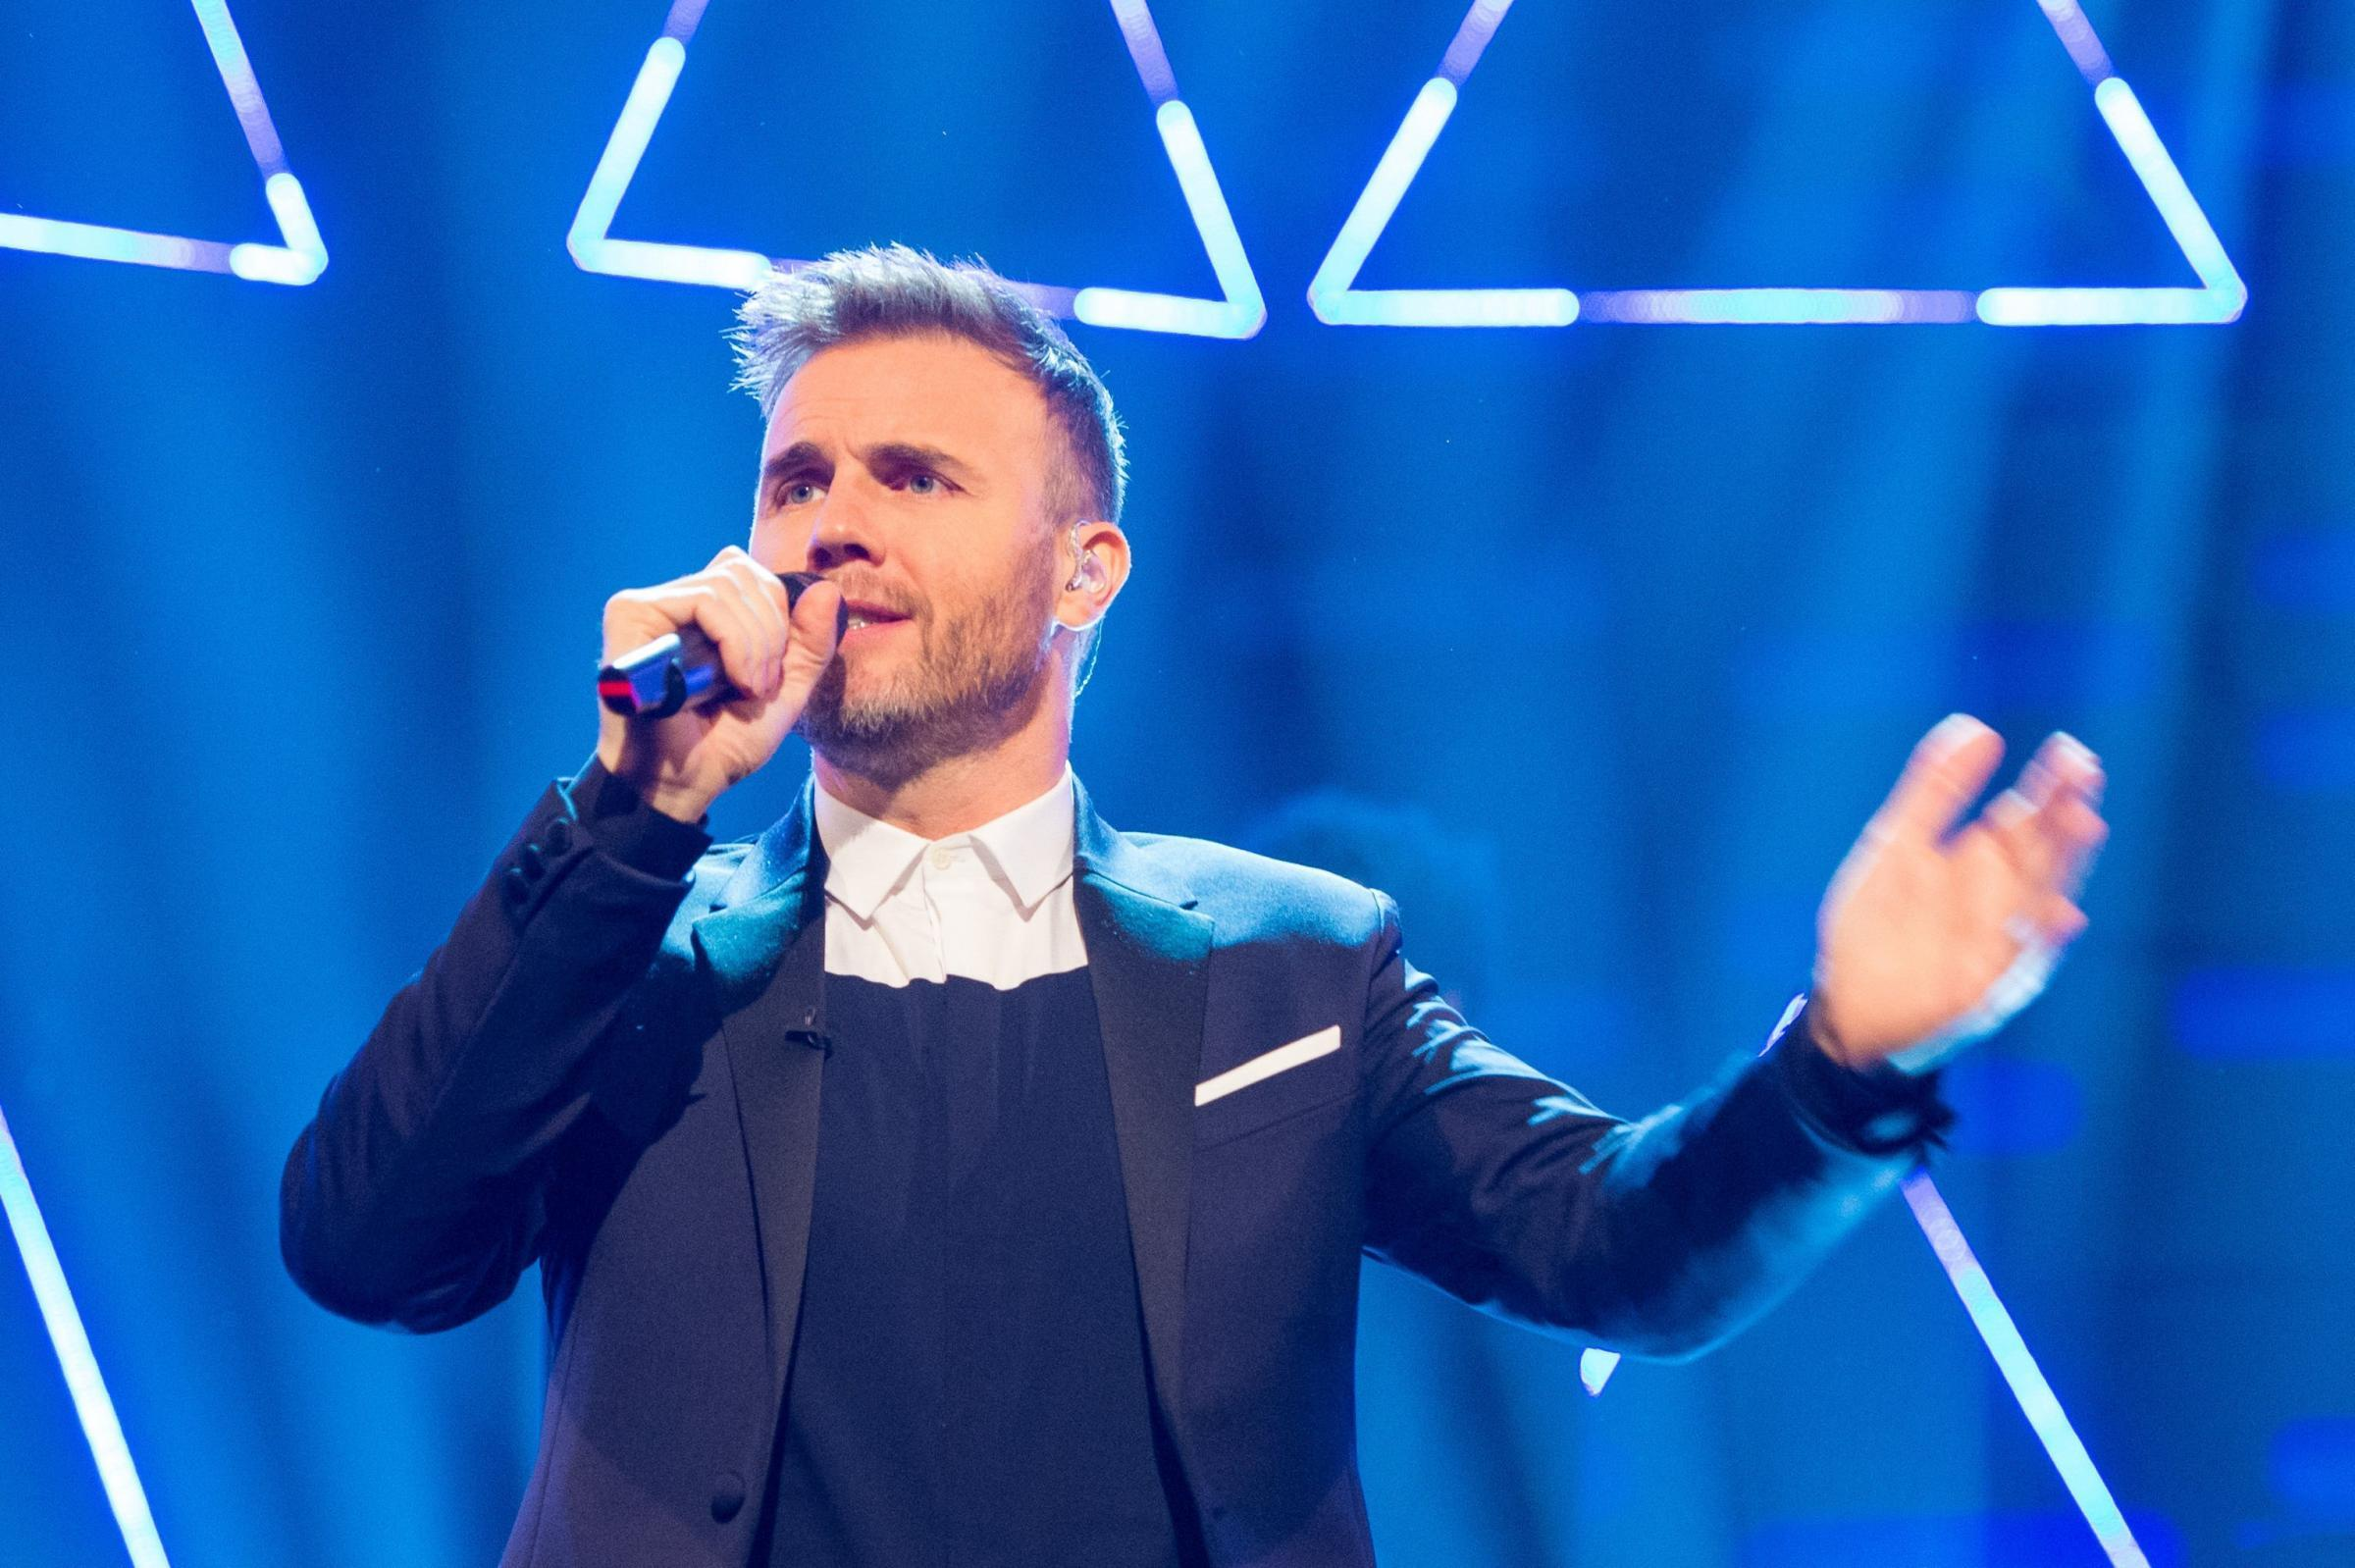 Gary Barlow will be on a solo tour in 2018